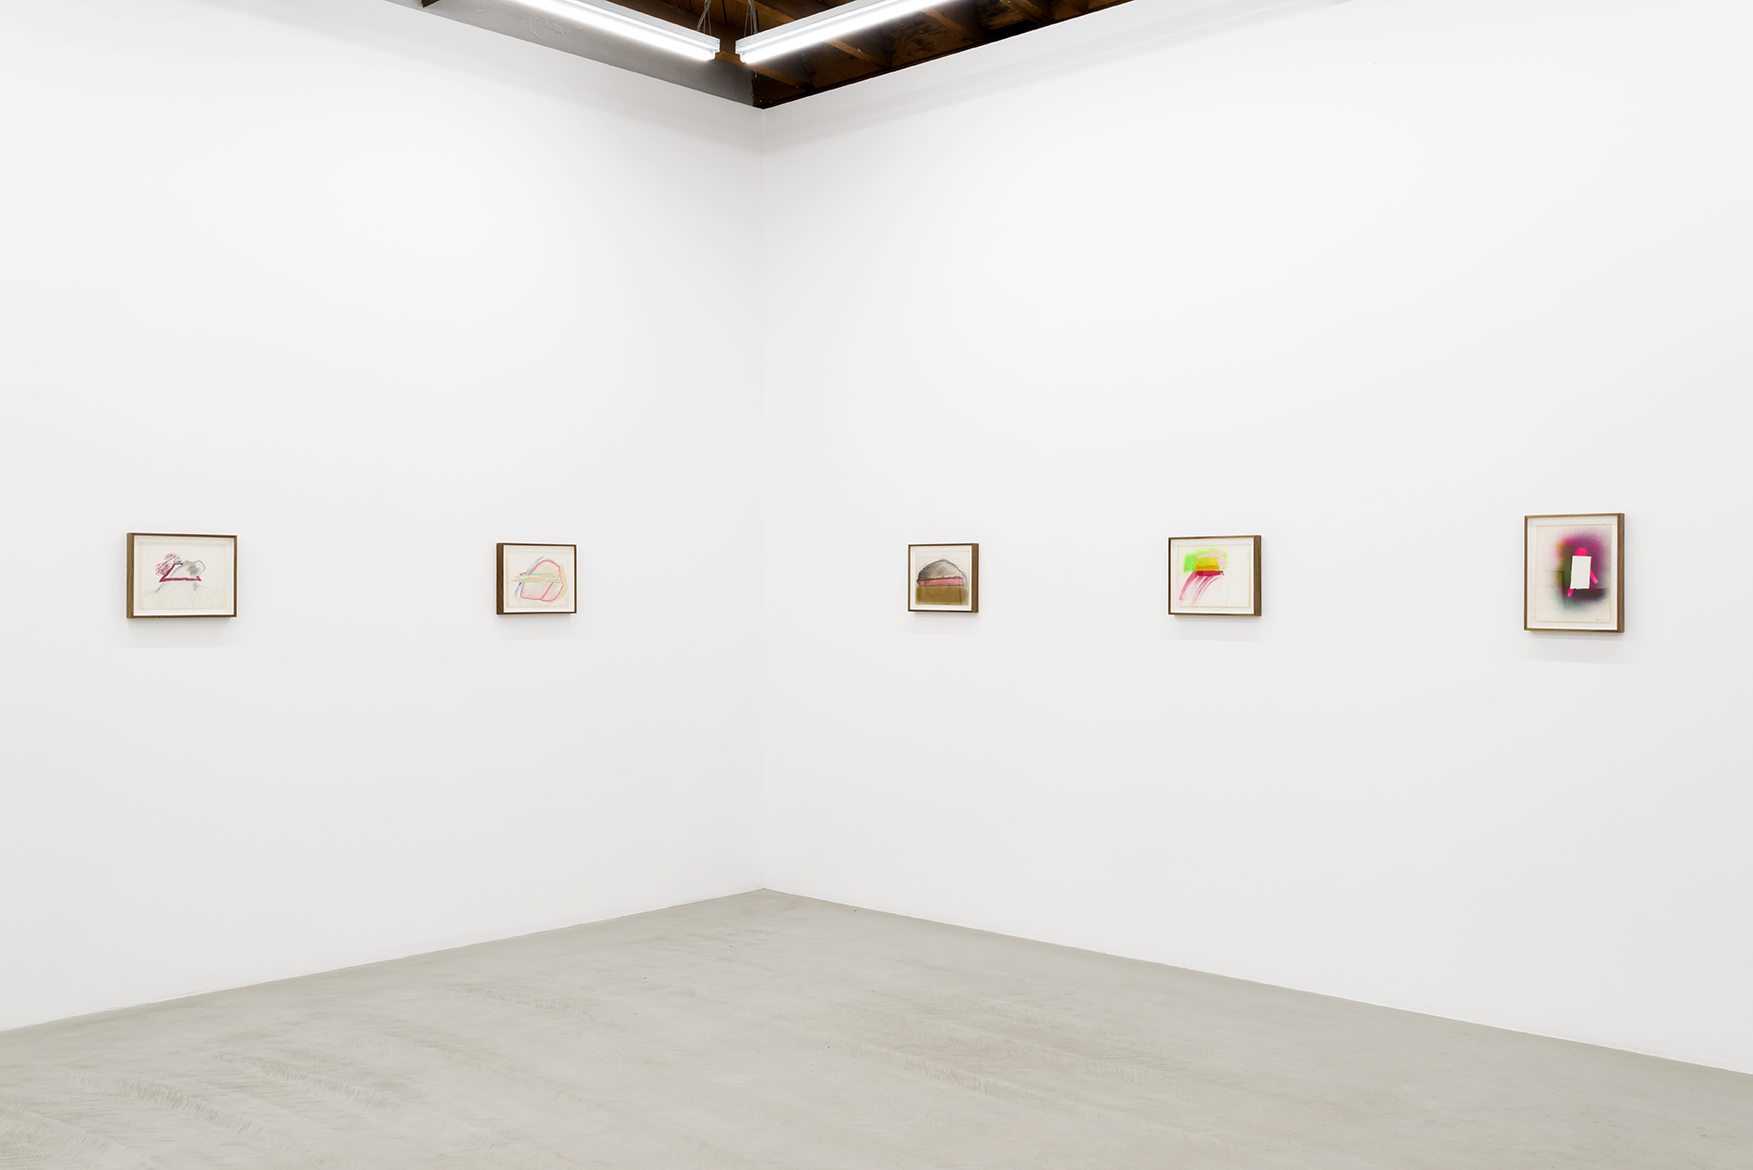 Installation view of Forrest Bess works painted from the artist's visions